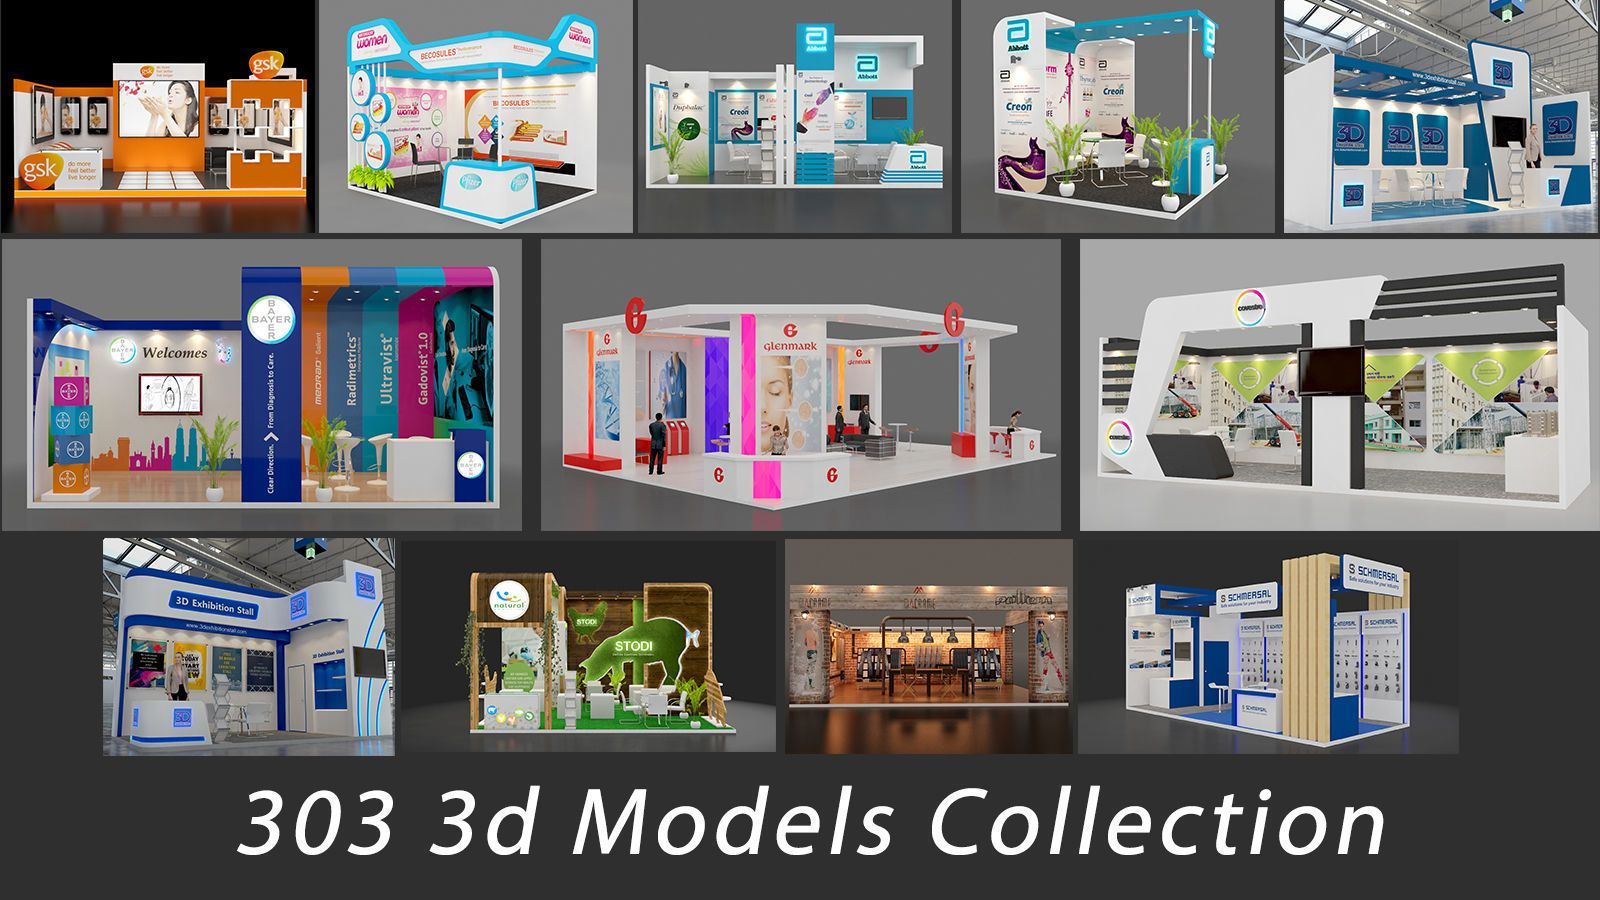 3d Exhibition Model : Exhibition stall collection d model exhibition stall model